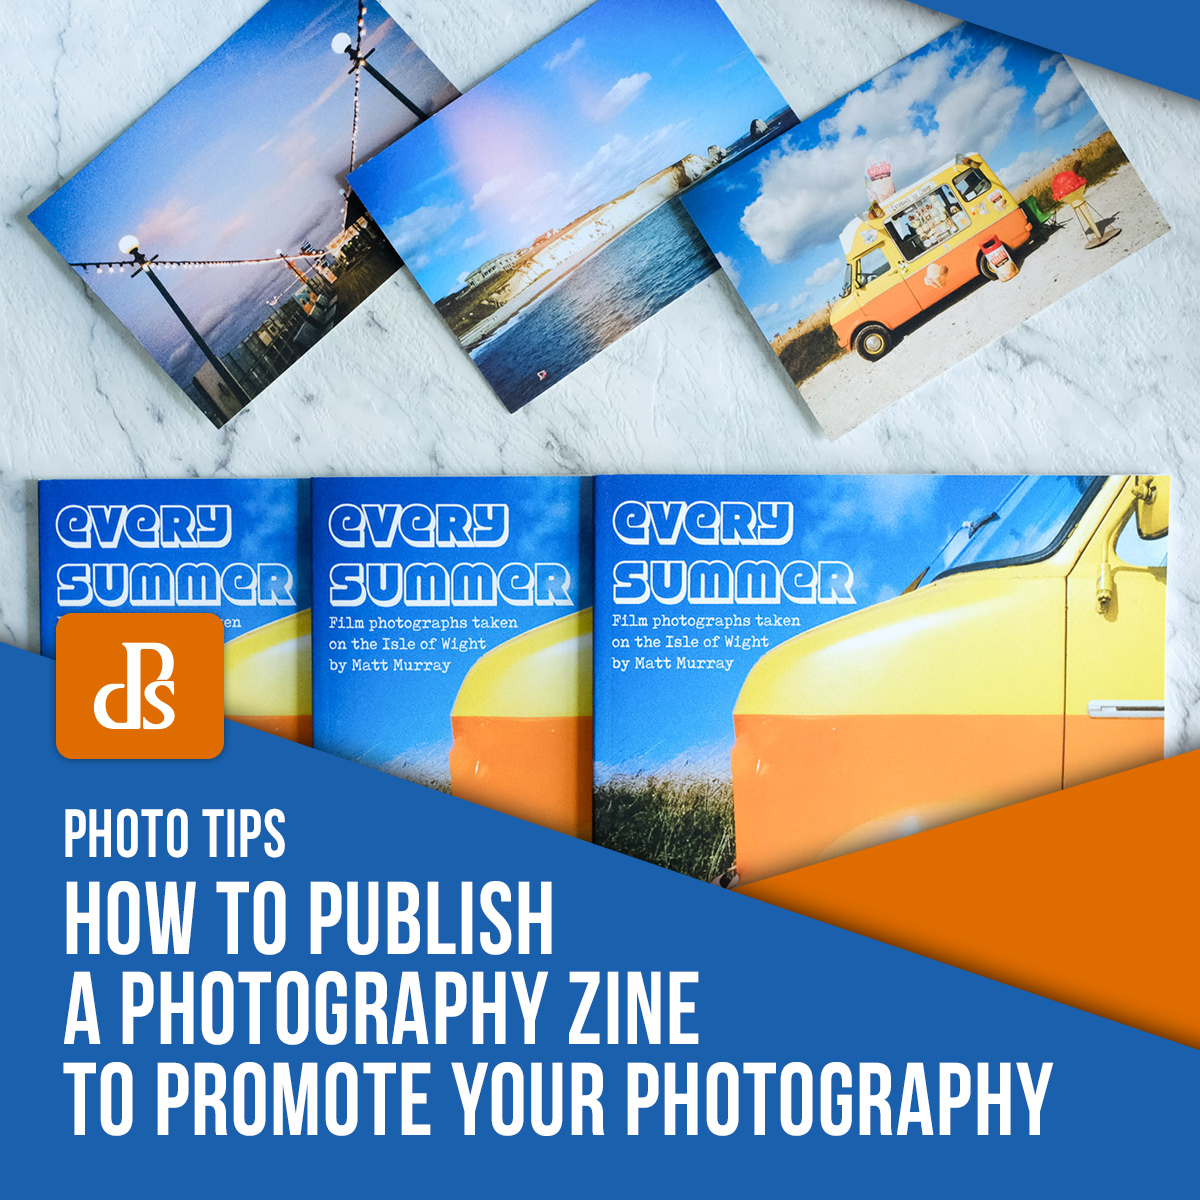 https://i2.wp.com/digital-photography-school.com/wp-content/uploads/2020/05/dps-how-to-publish-a-photography-zine.jpg?ssl=1